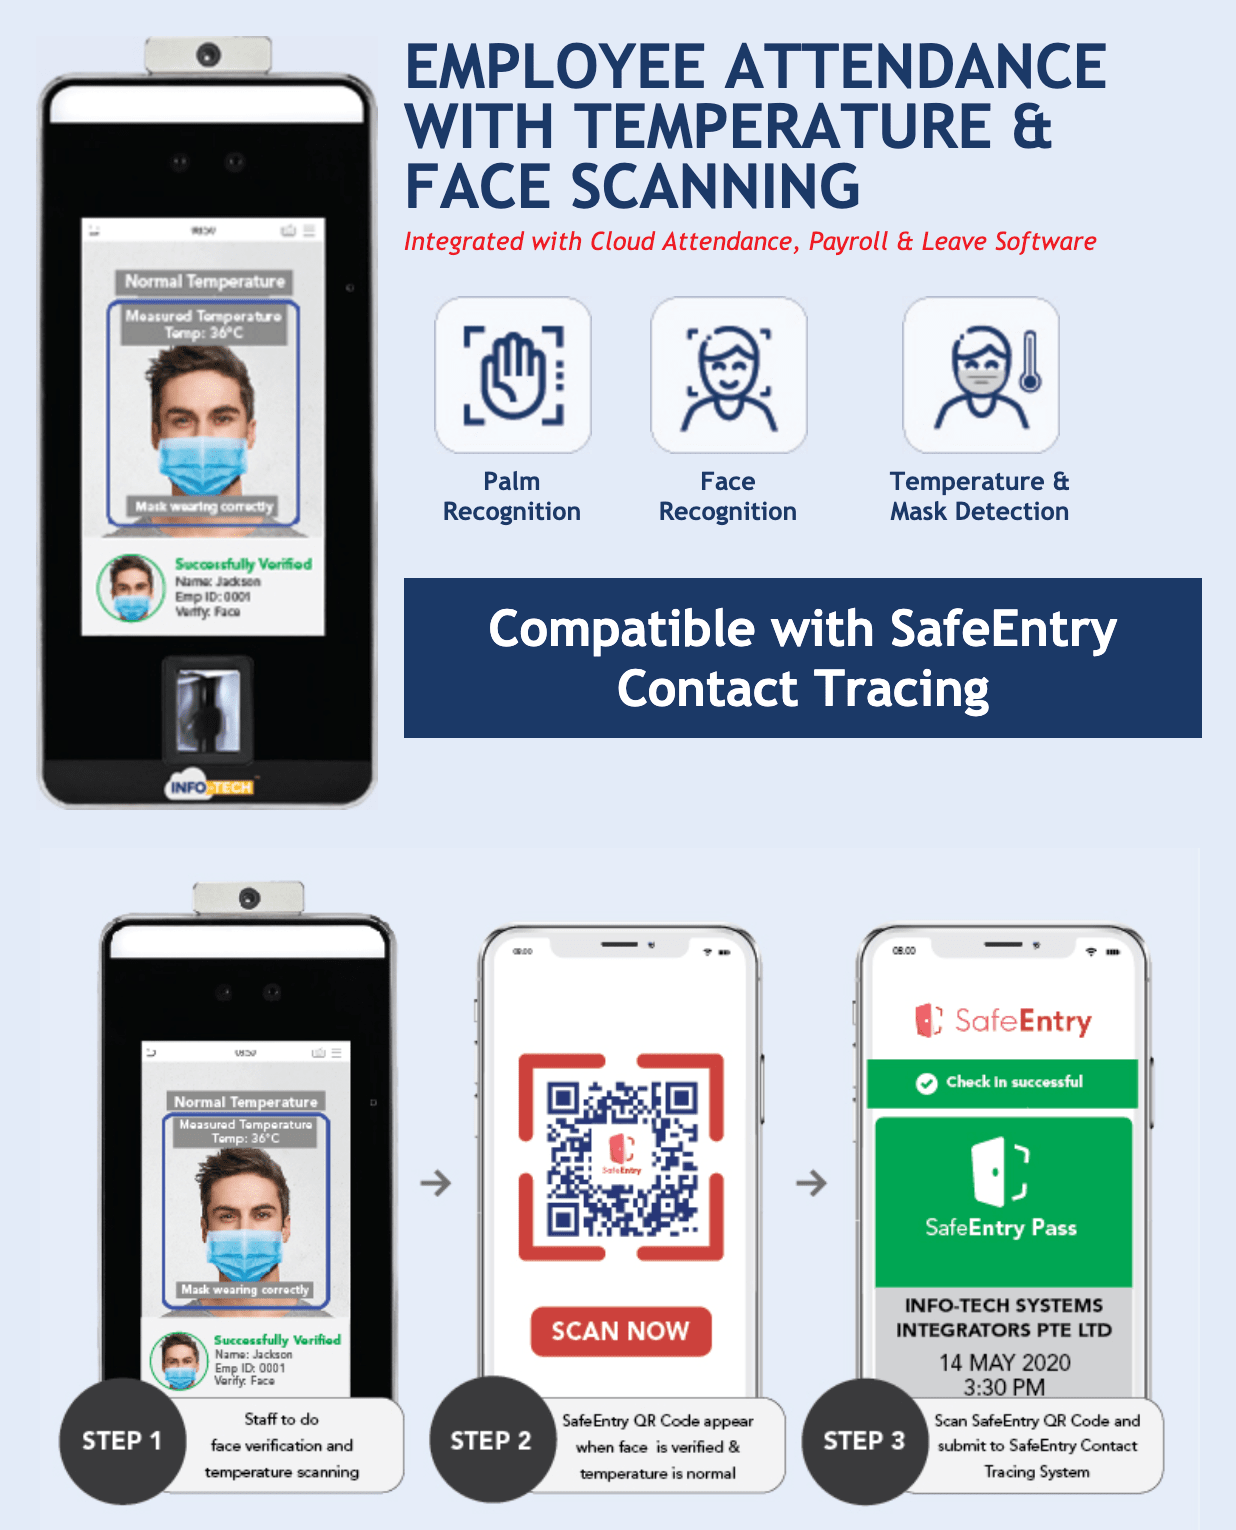 psg temperature taking and face scanning safe entry